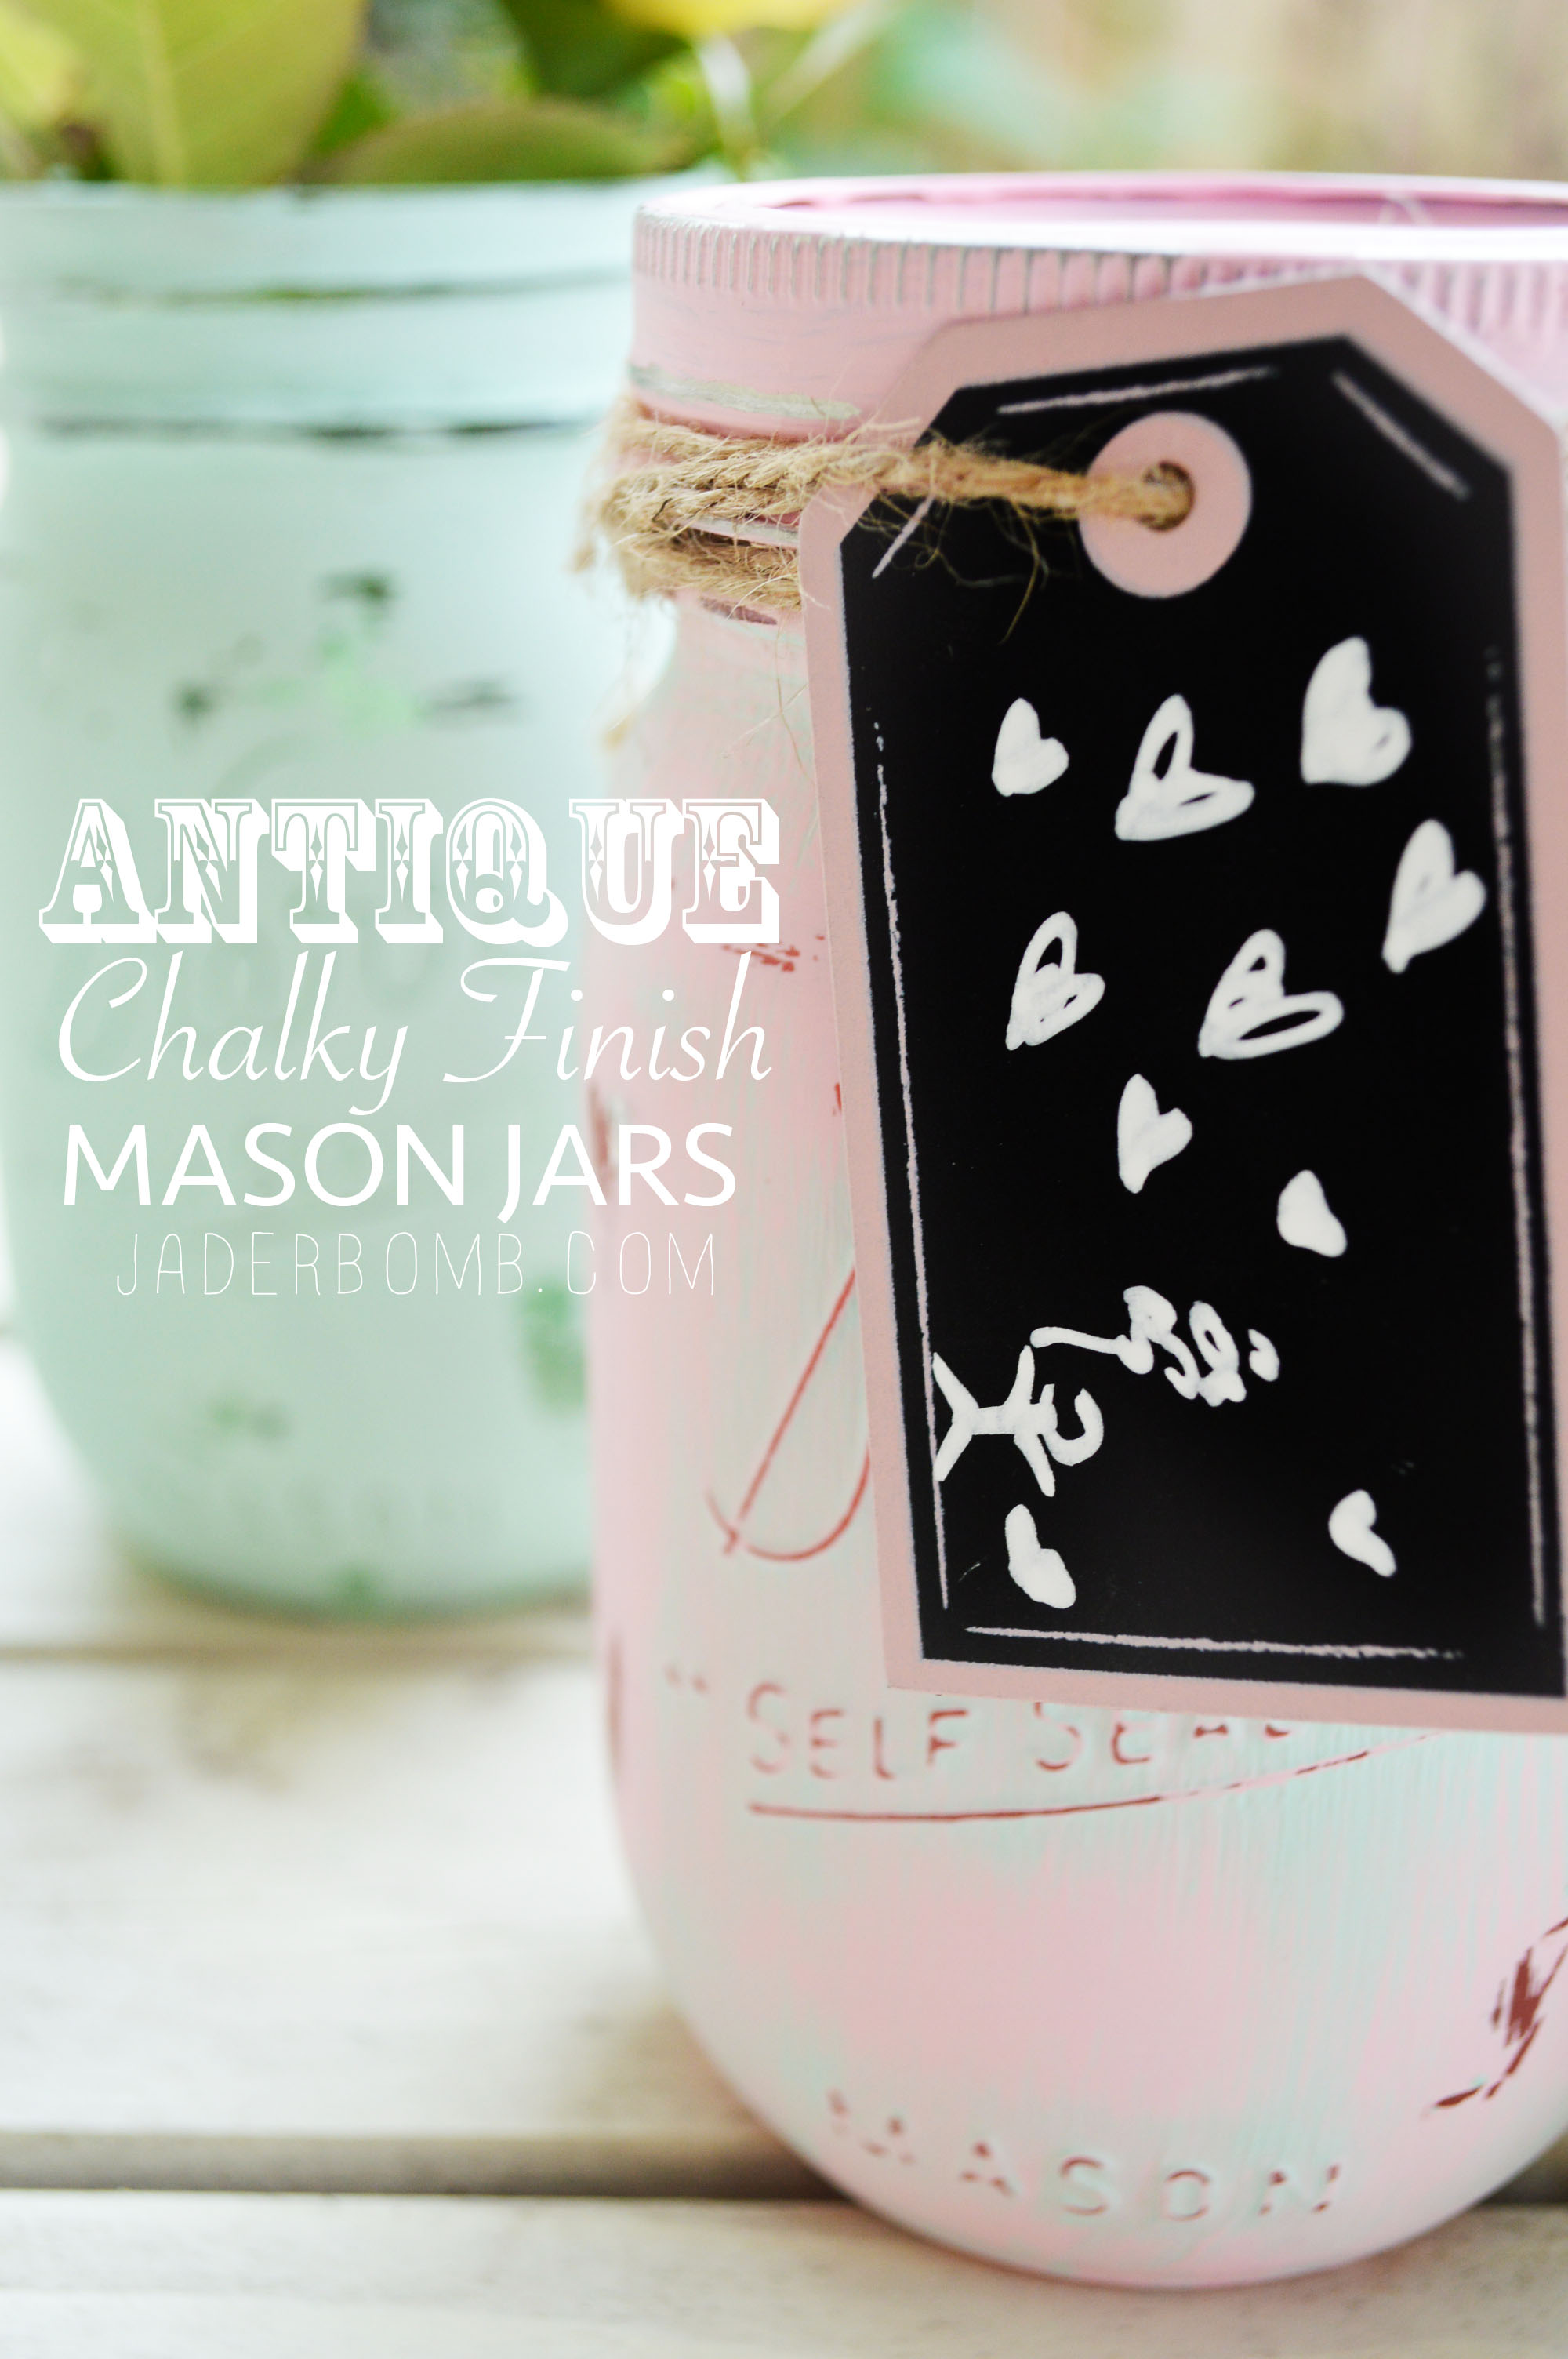 ANTIQUE CHALKBOARD MASON JARS